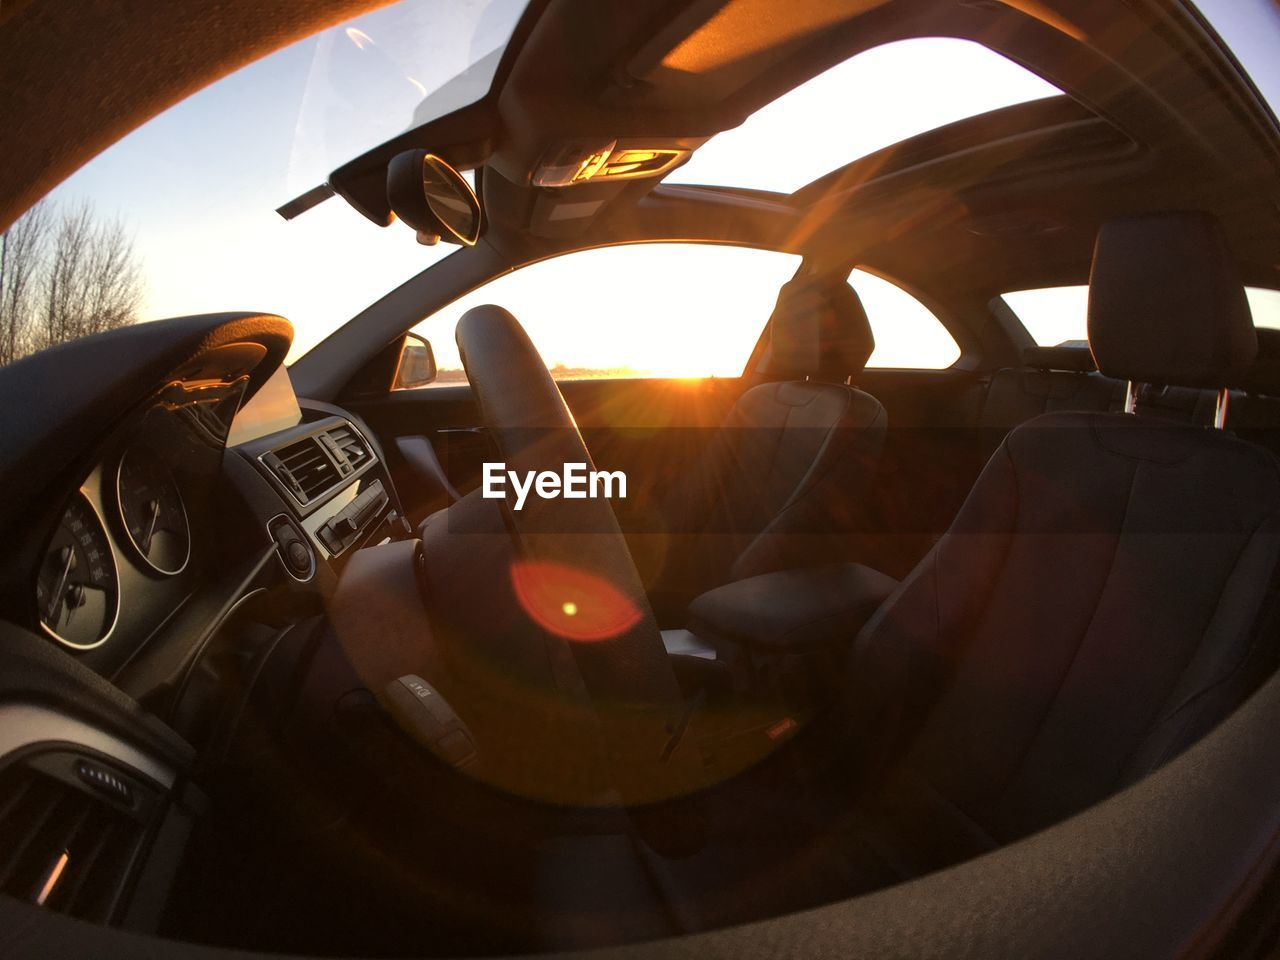 vehicle interior, car interior, transportation, steering wheel, car, human hand, one person, dashboard, close-up, human body part, real people, day, speedometer, men, sky, outdoors, people